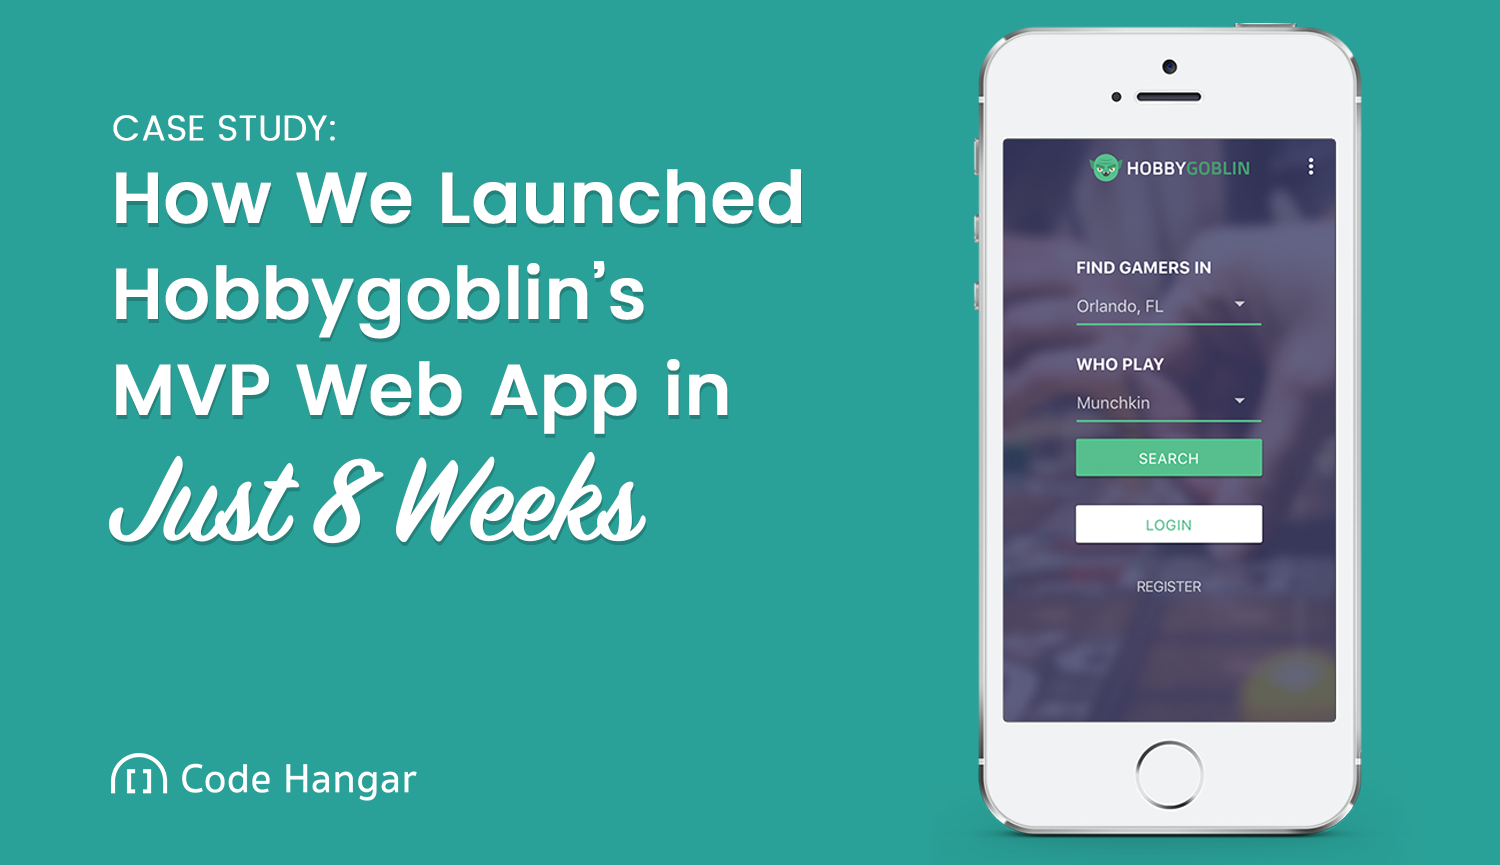 How We Launched Hobbygoblin's MVP Web App in Just Eight Weeks